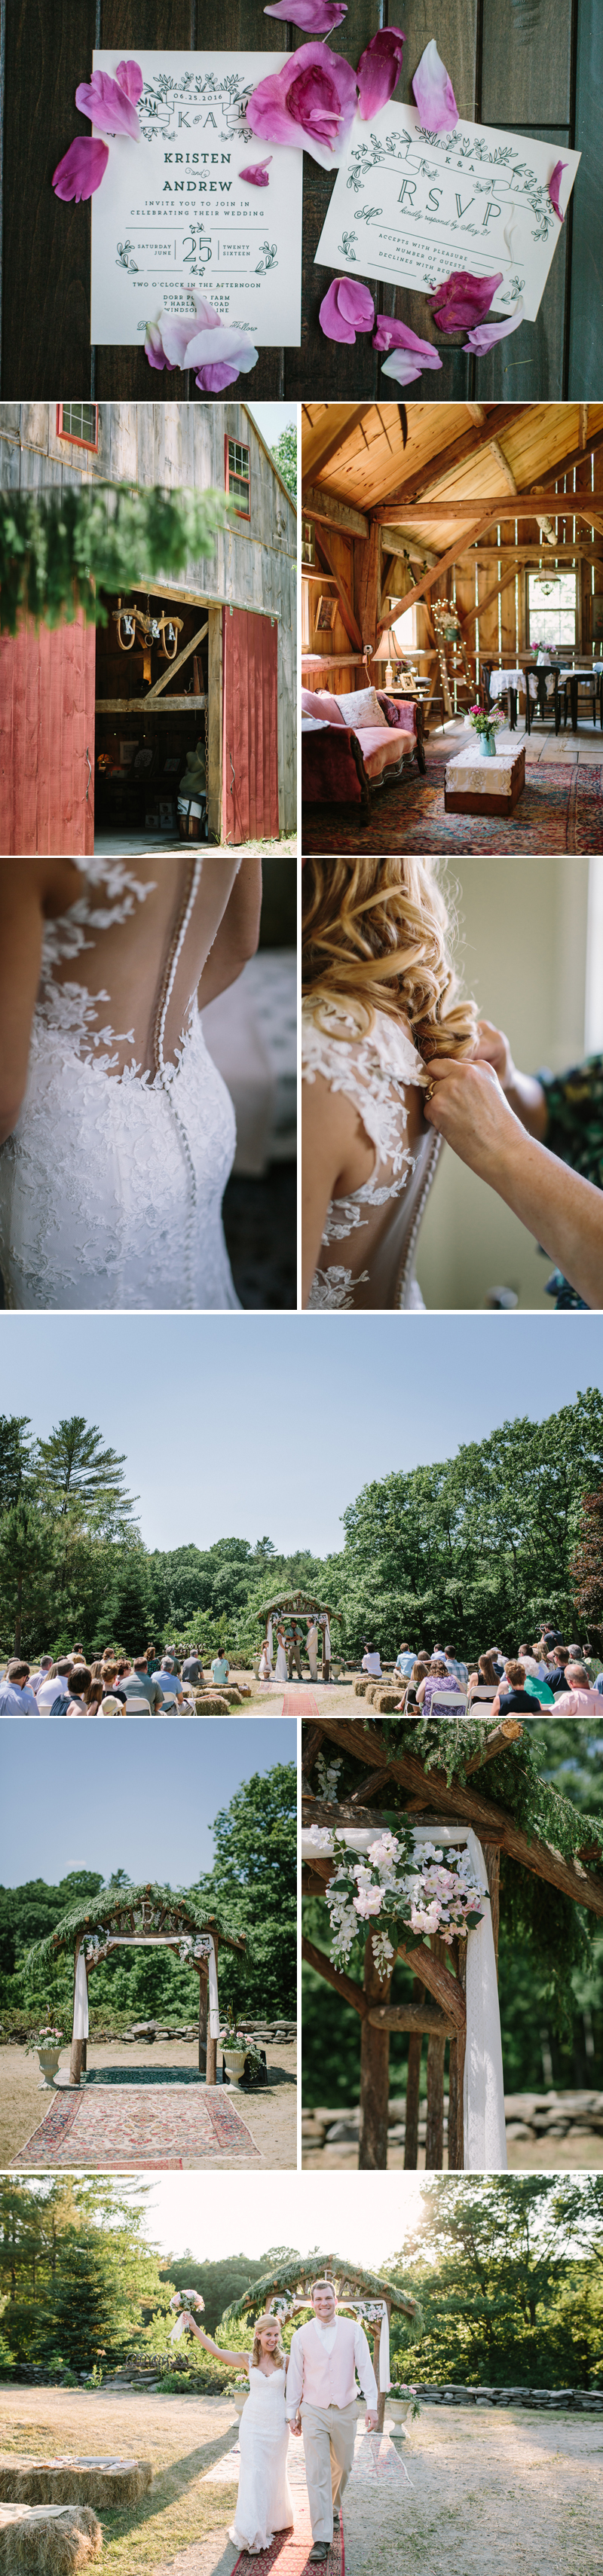 02-rustic-rural-maine-wedding-courtney-elizabeth.jpg